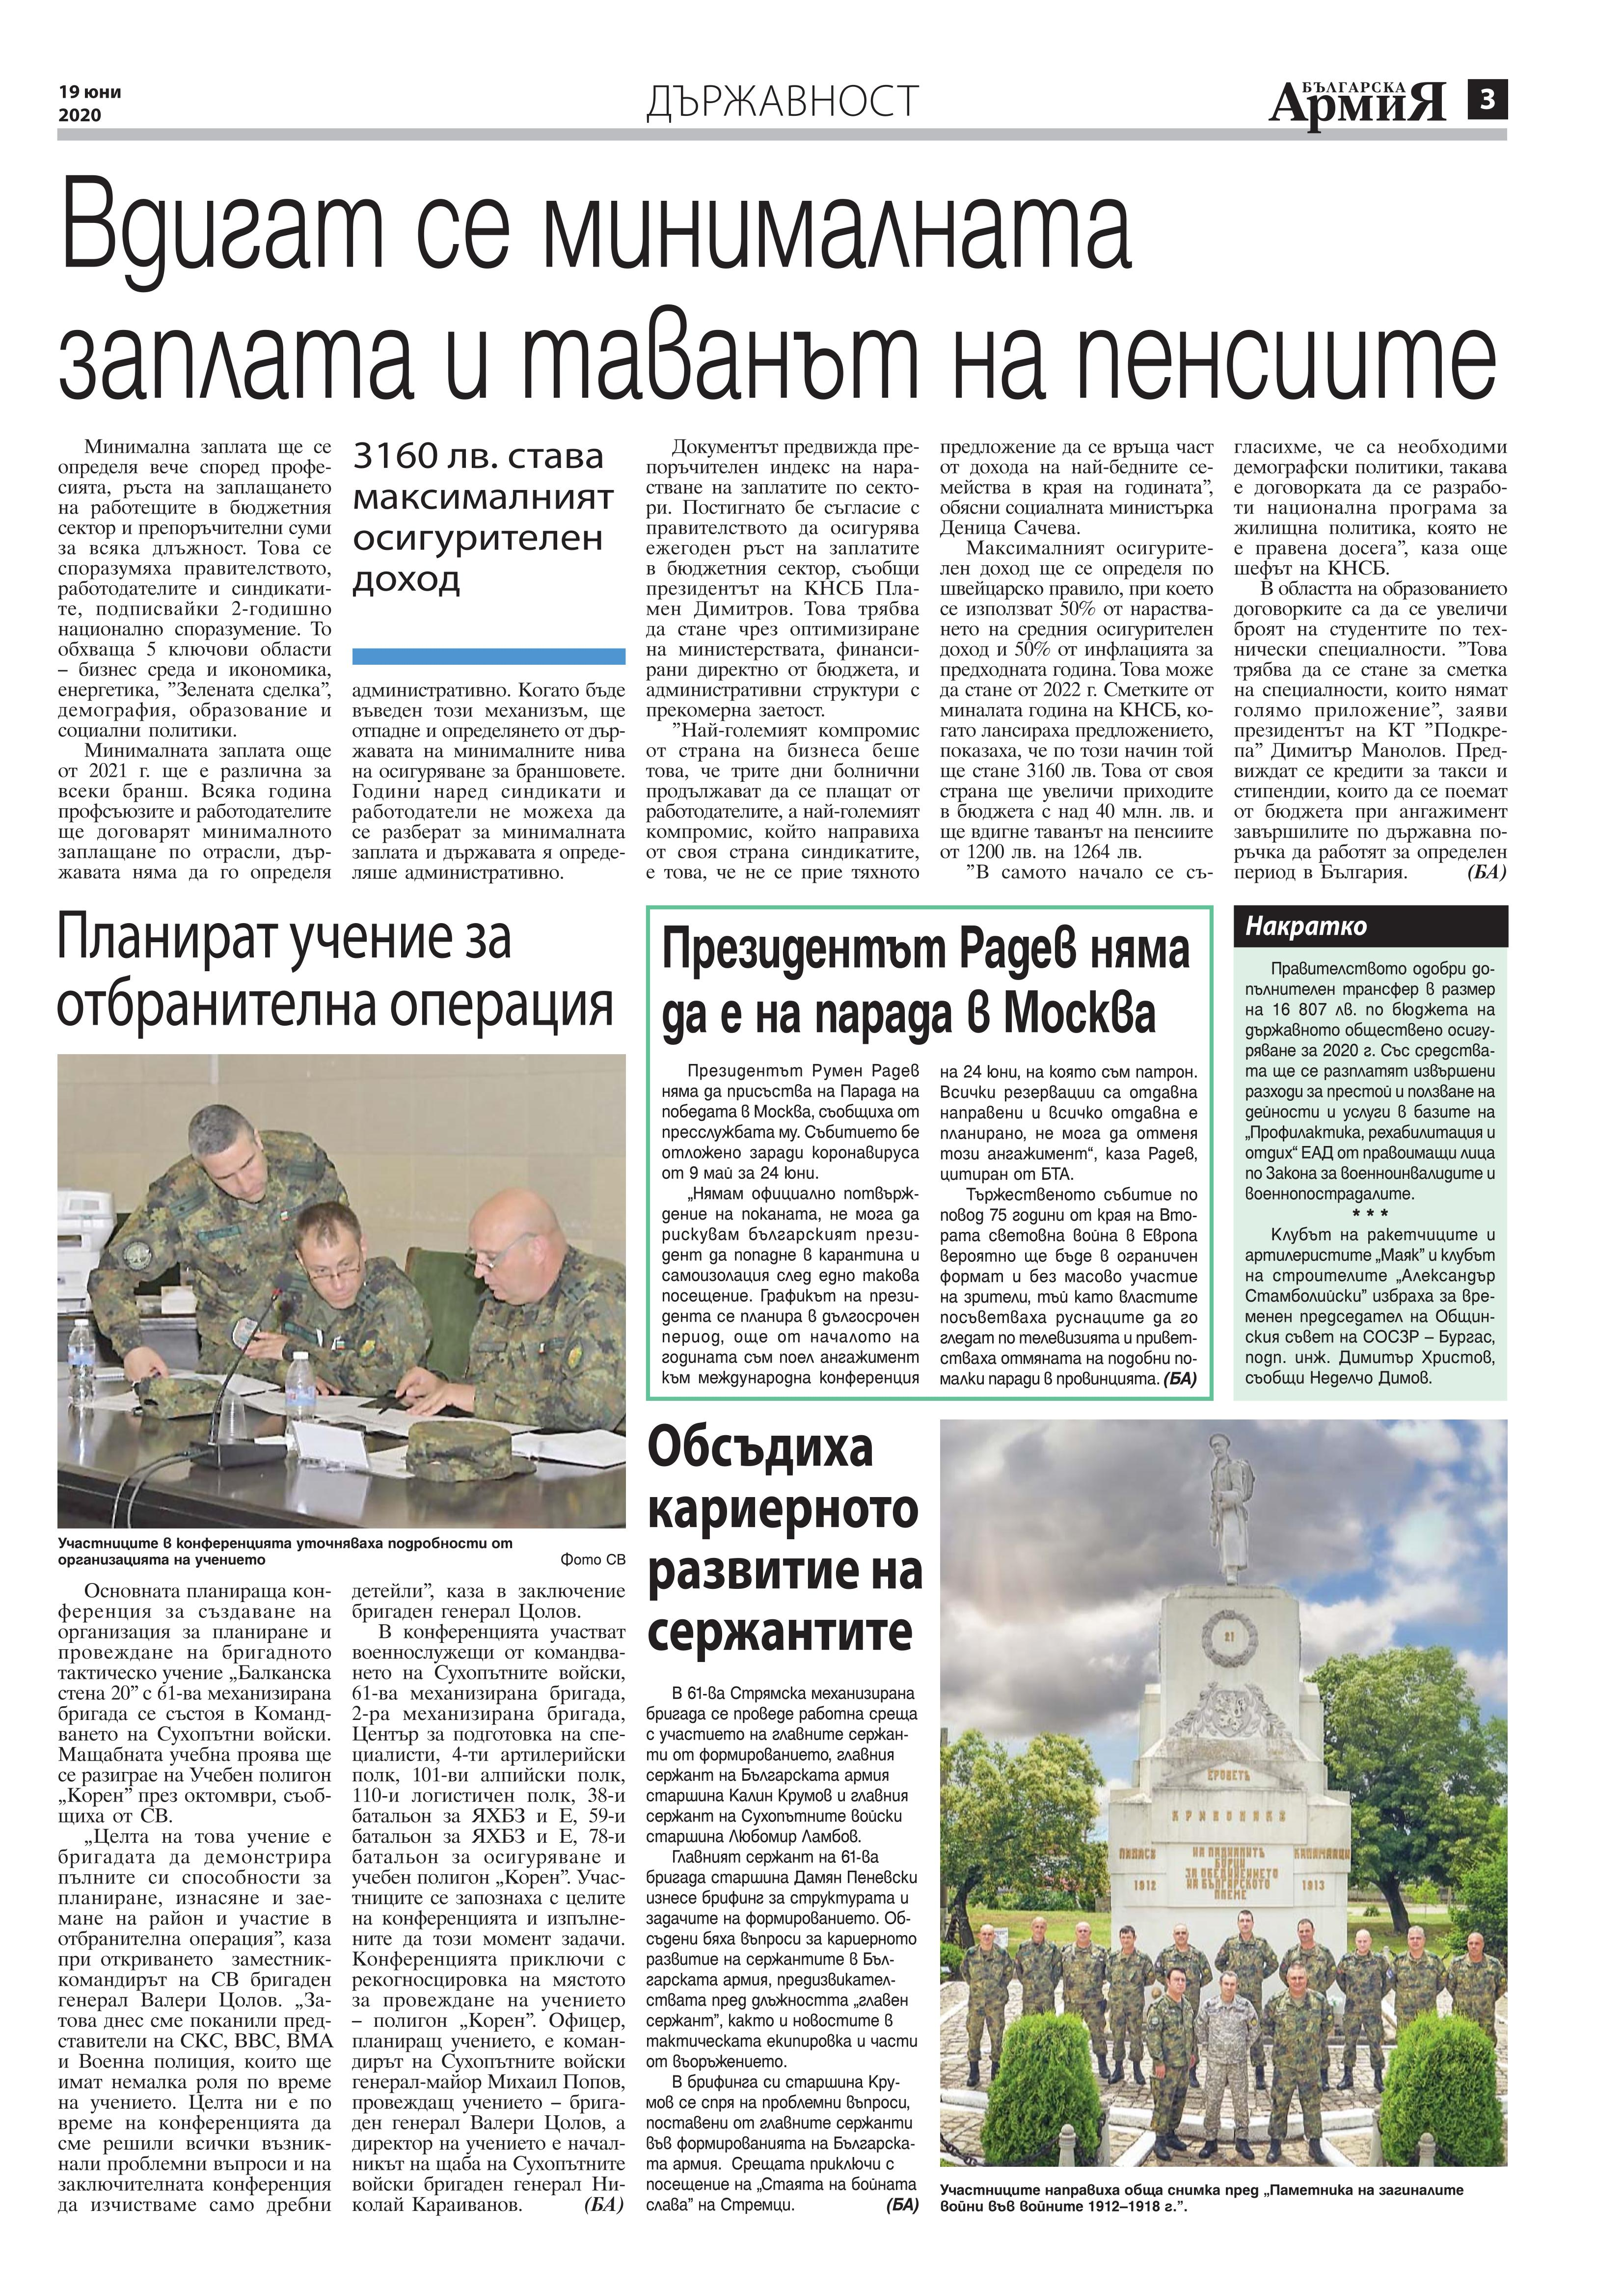 https://www.armymedia.bg/wp-content/uploads/2015/06/03.page1_-141.jpg